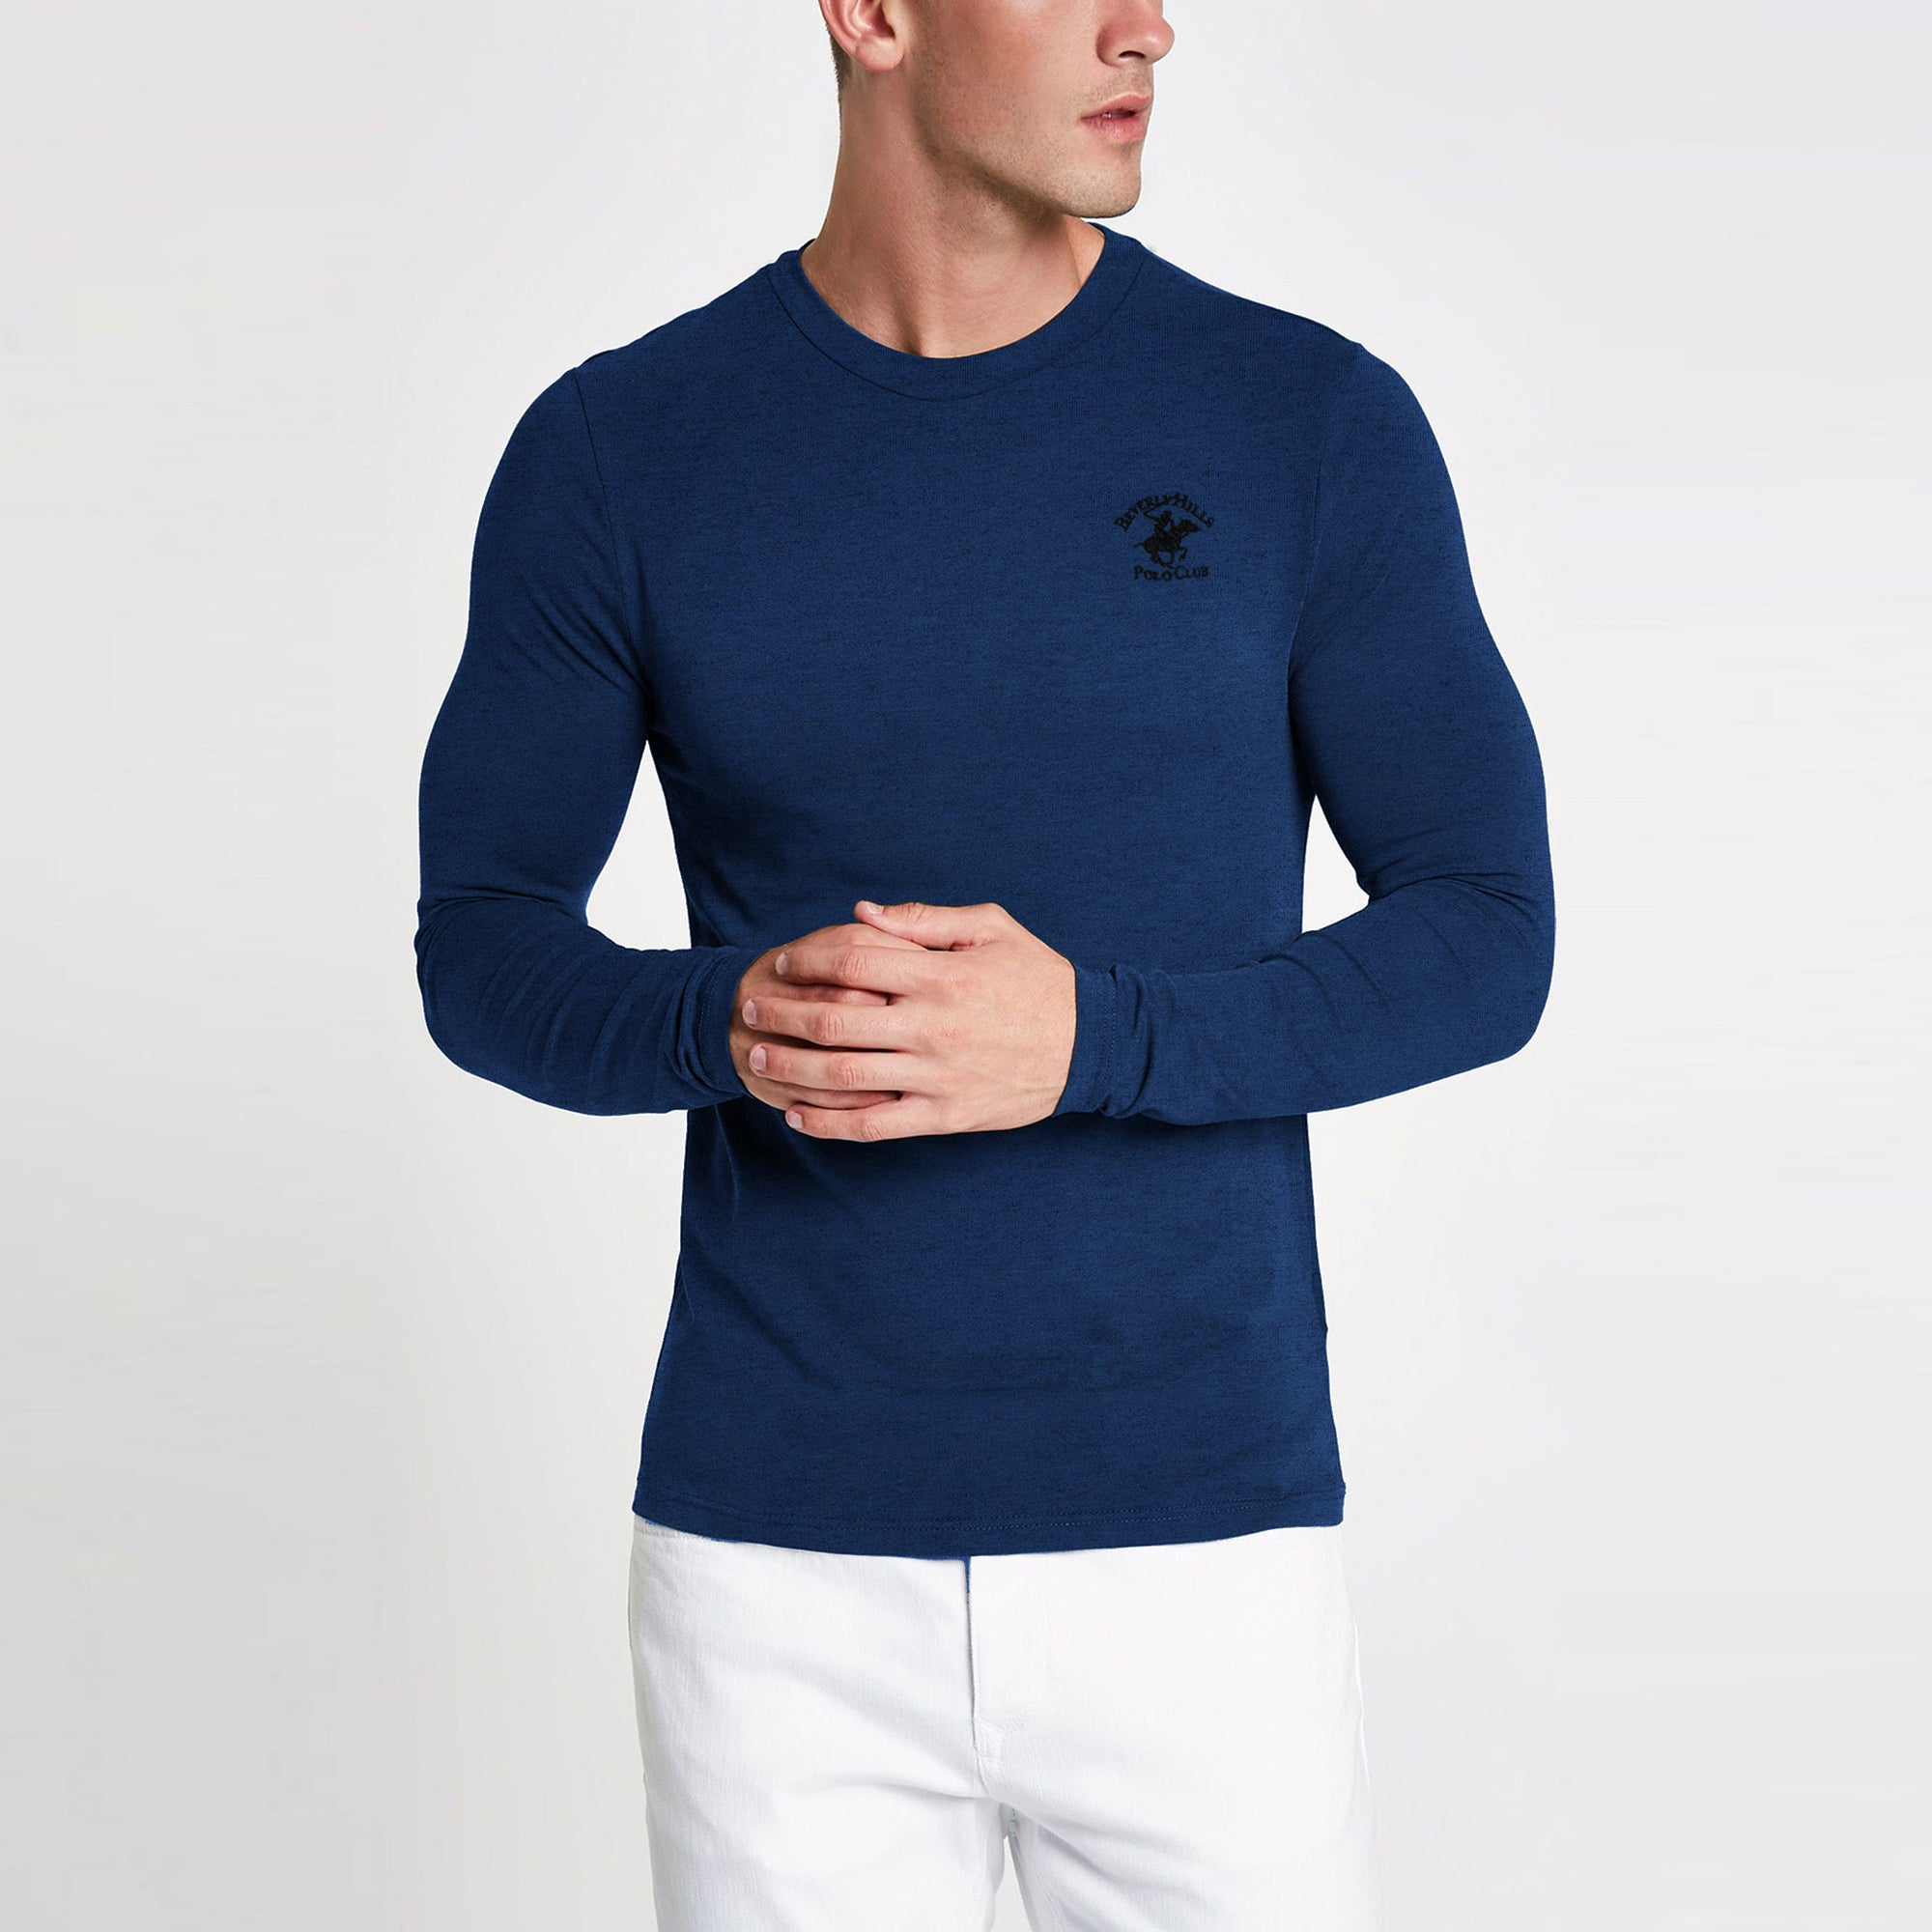 Beverly Hills Single Jersey Long Sleeve Tee Shirt For Men-Dark Blue Melange-BE8886